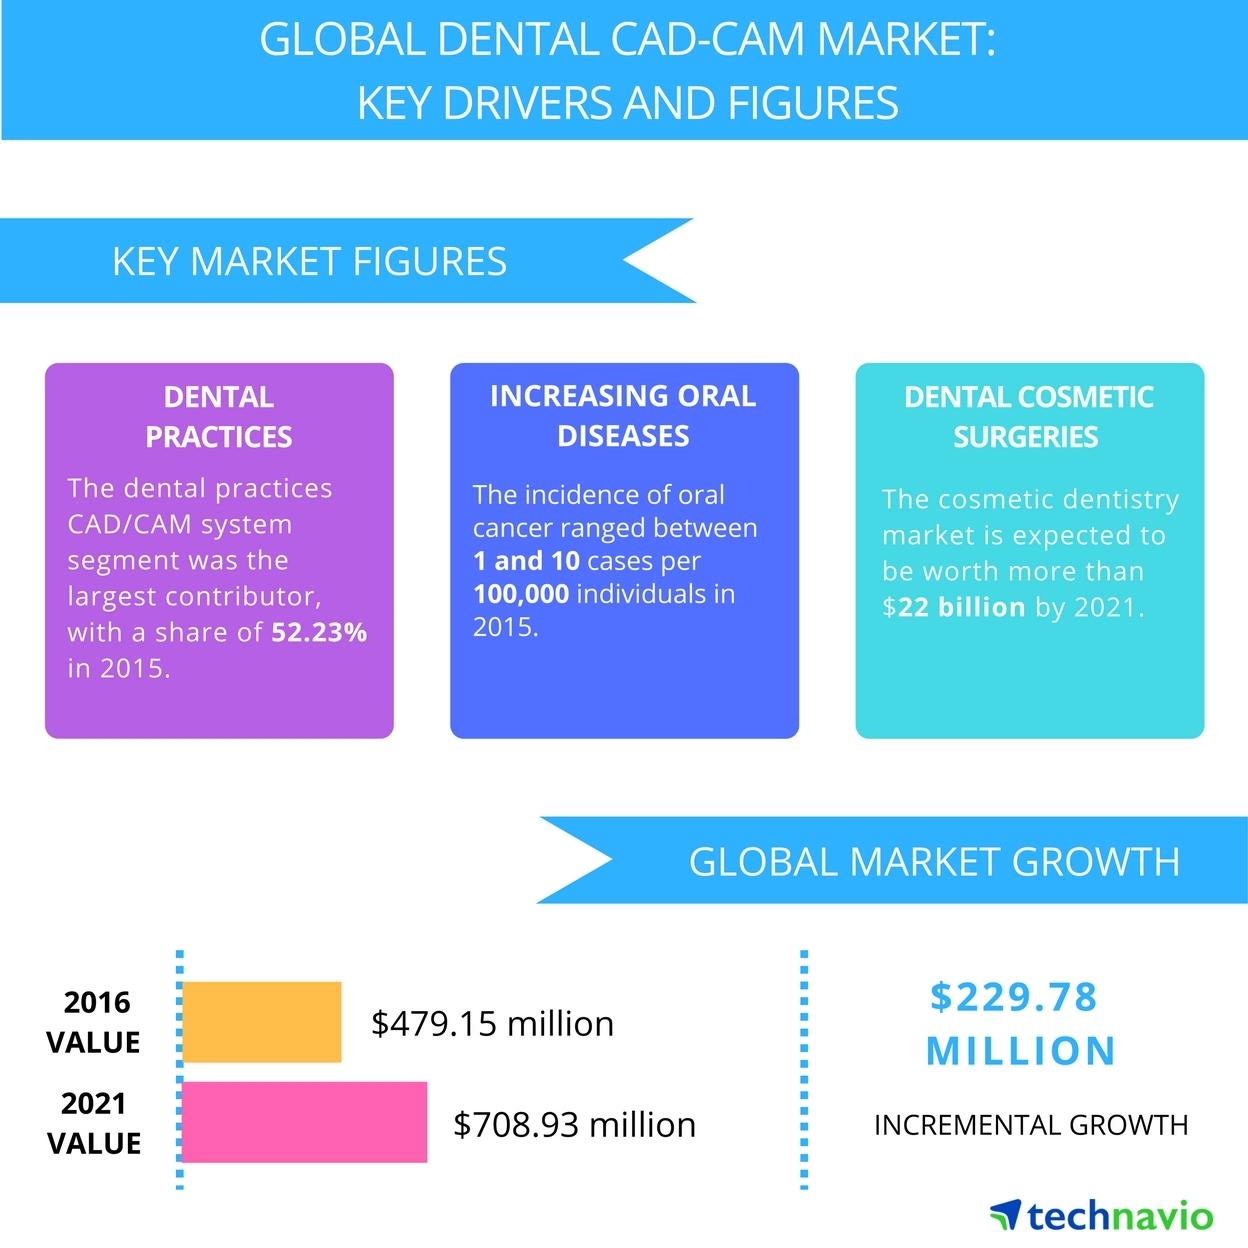 Top 5 Vendors in the Dental CAD-CAM Market from 2016 to 2021